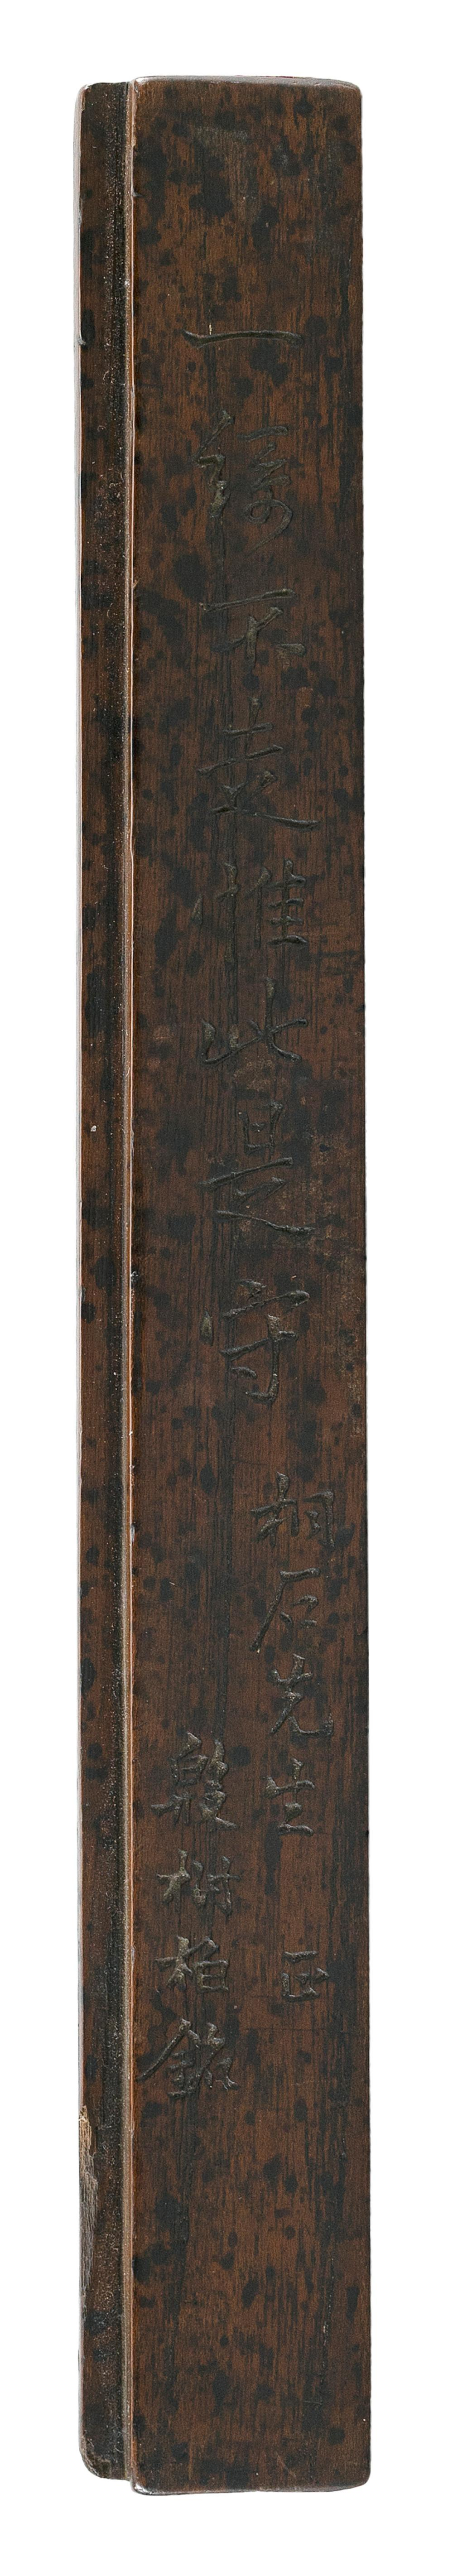 CHINESE CARVED WOODEN SCROLL WEIGHT Extensively carved with calligraphy on two faces. Signed and seal marked. Length 10